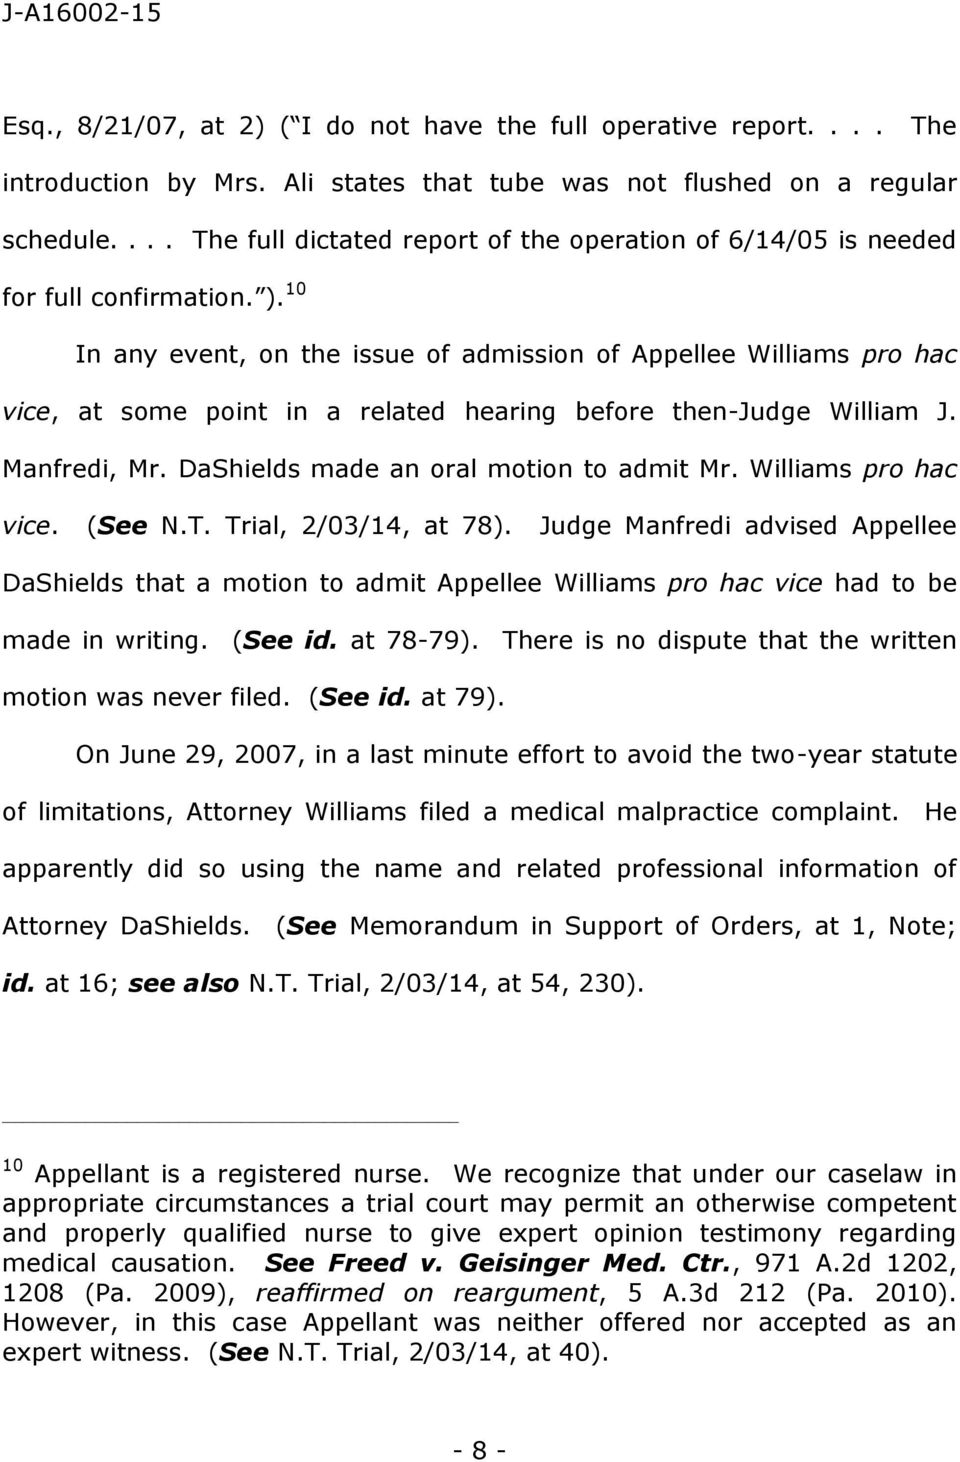 10 In any event, on the issue of admission of Appellee Williams pro hac vice, at some point in a related hearing before then-judge William J. Manfredi, Mr. DaShields made an oral motion to admit Mr.